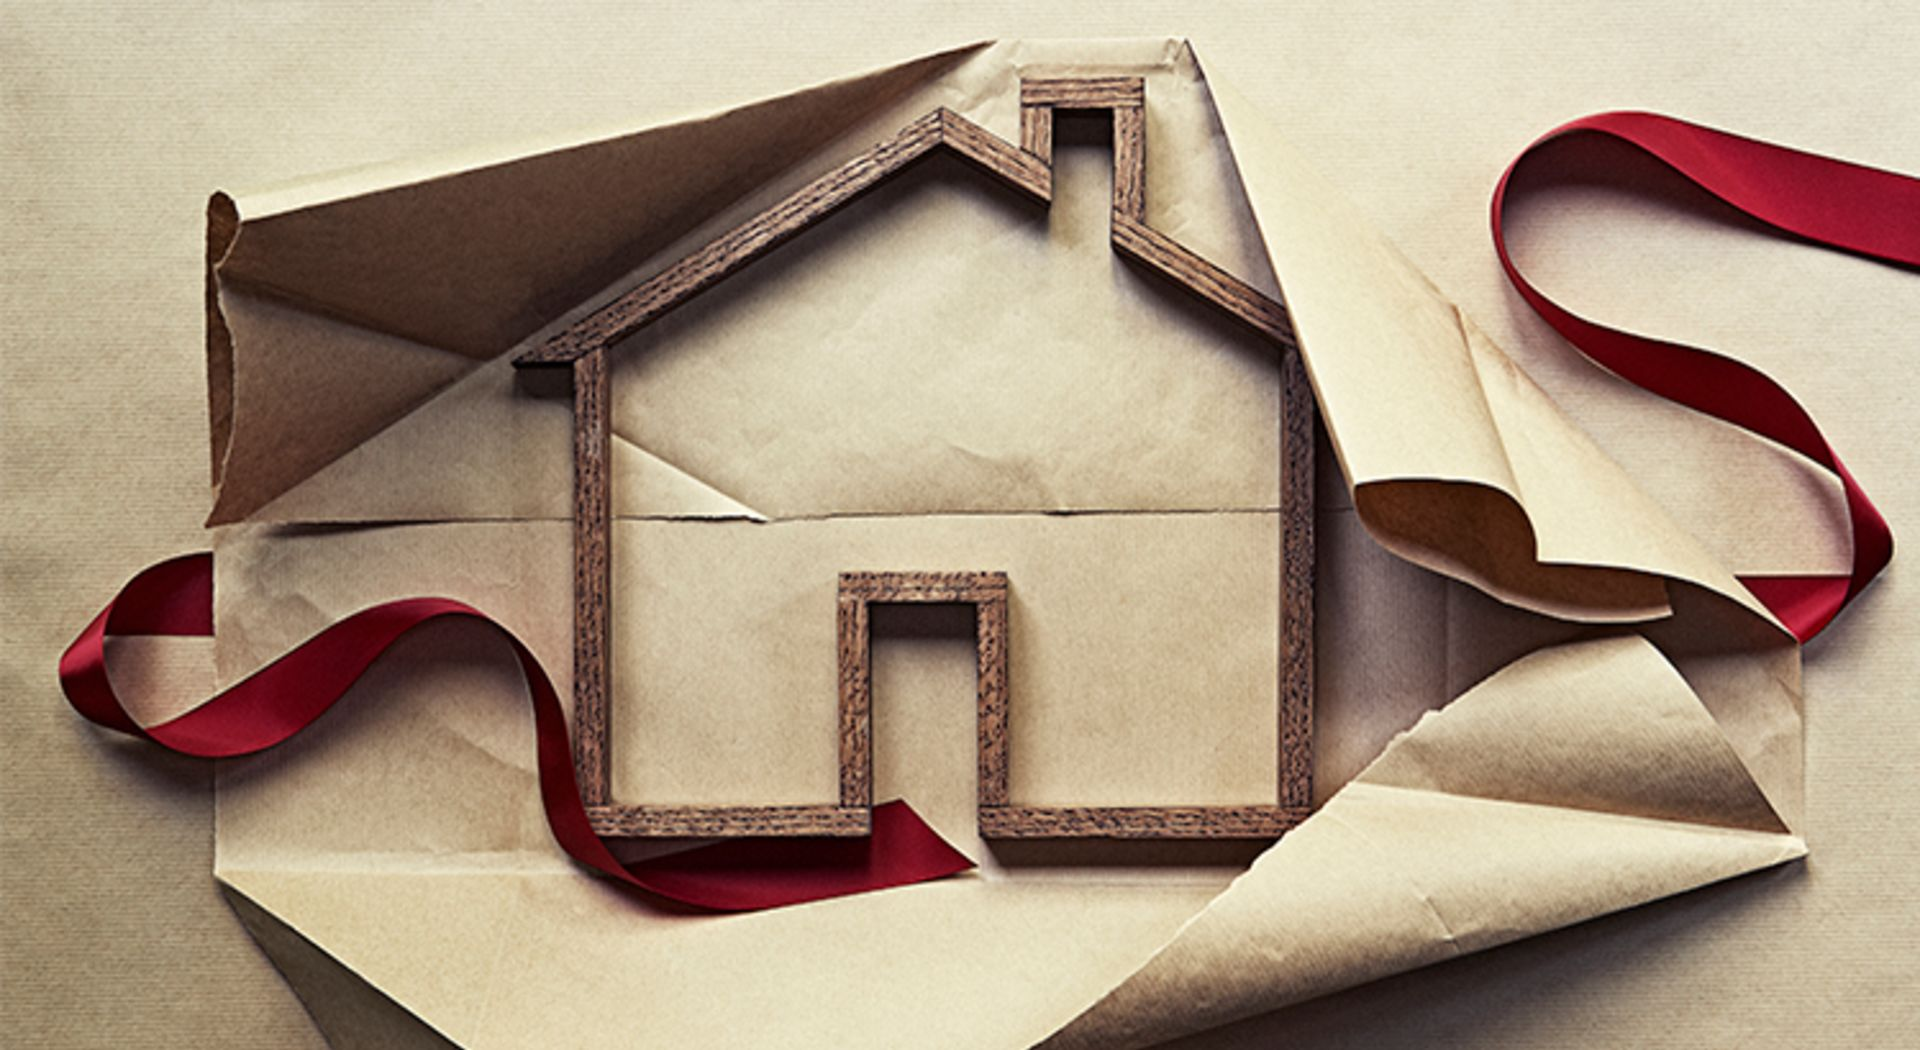 2 Factors to Watch in Todays Real Estate Market Whether Buying or Selling